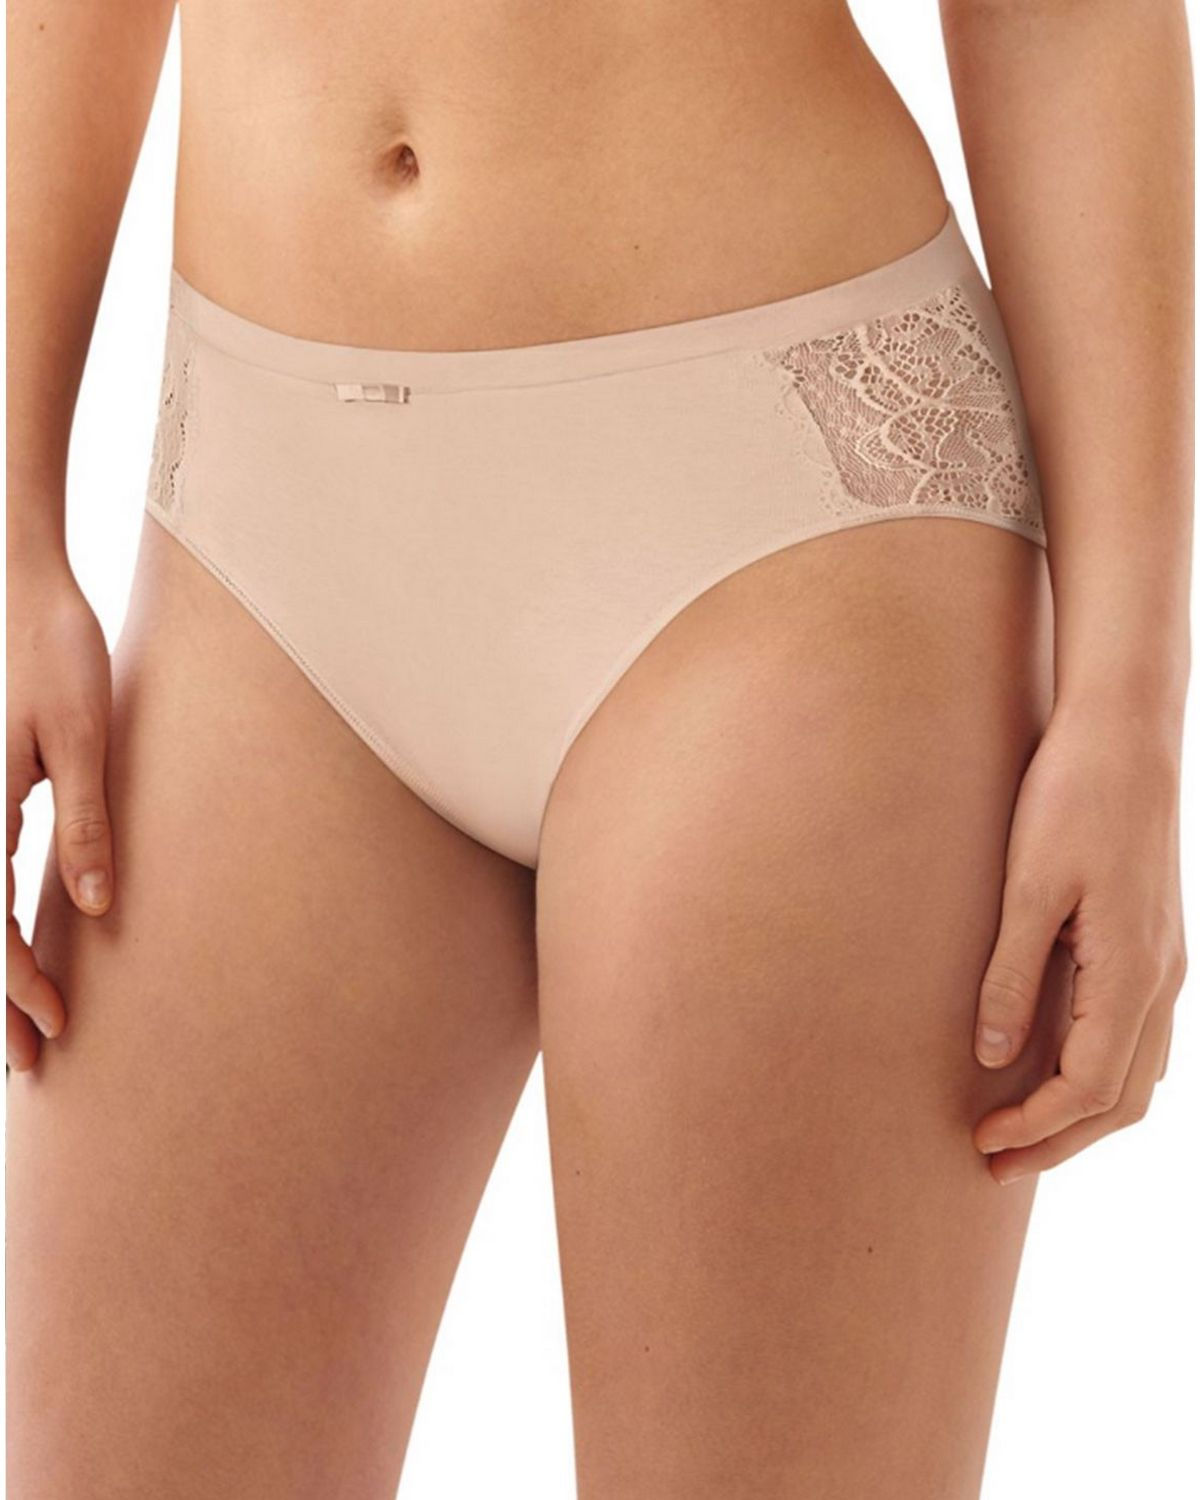 Bali DFCD62 Cotton Hi-Cut Brief - Champagne Shimmer - 8 DFCD62